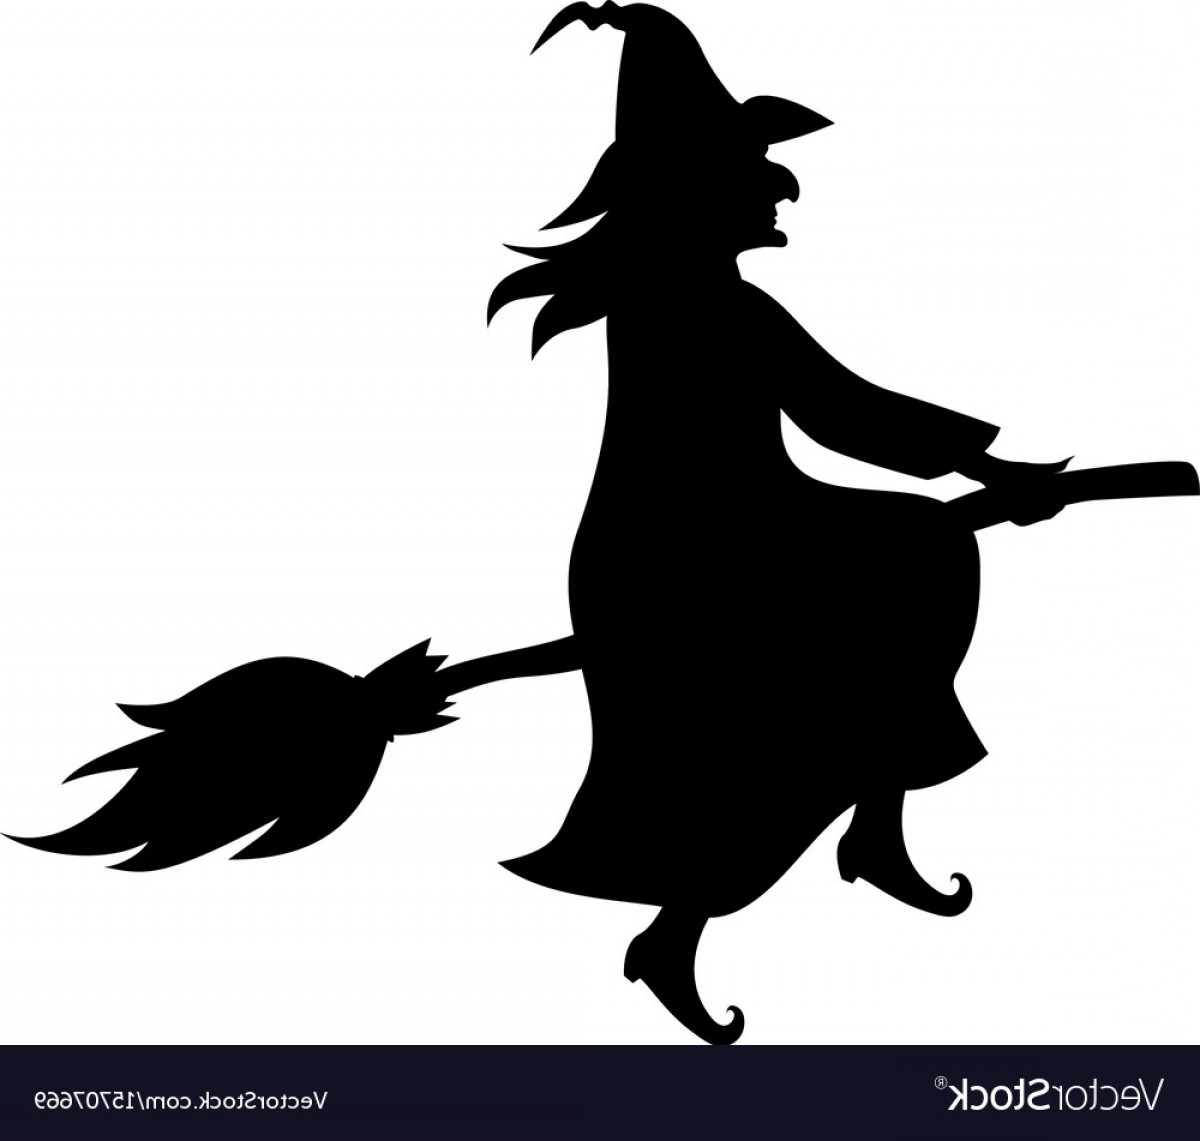 Witch Silhouette Vector: Witch On Broom Fly Silhouette Vector